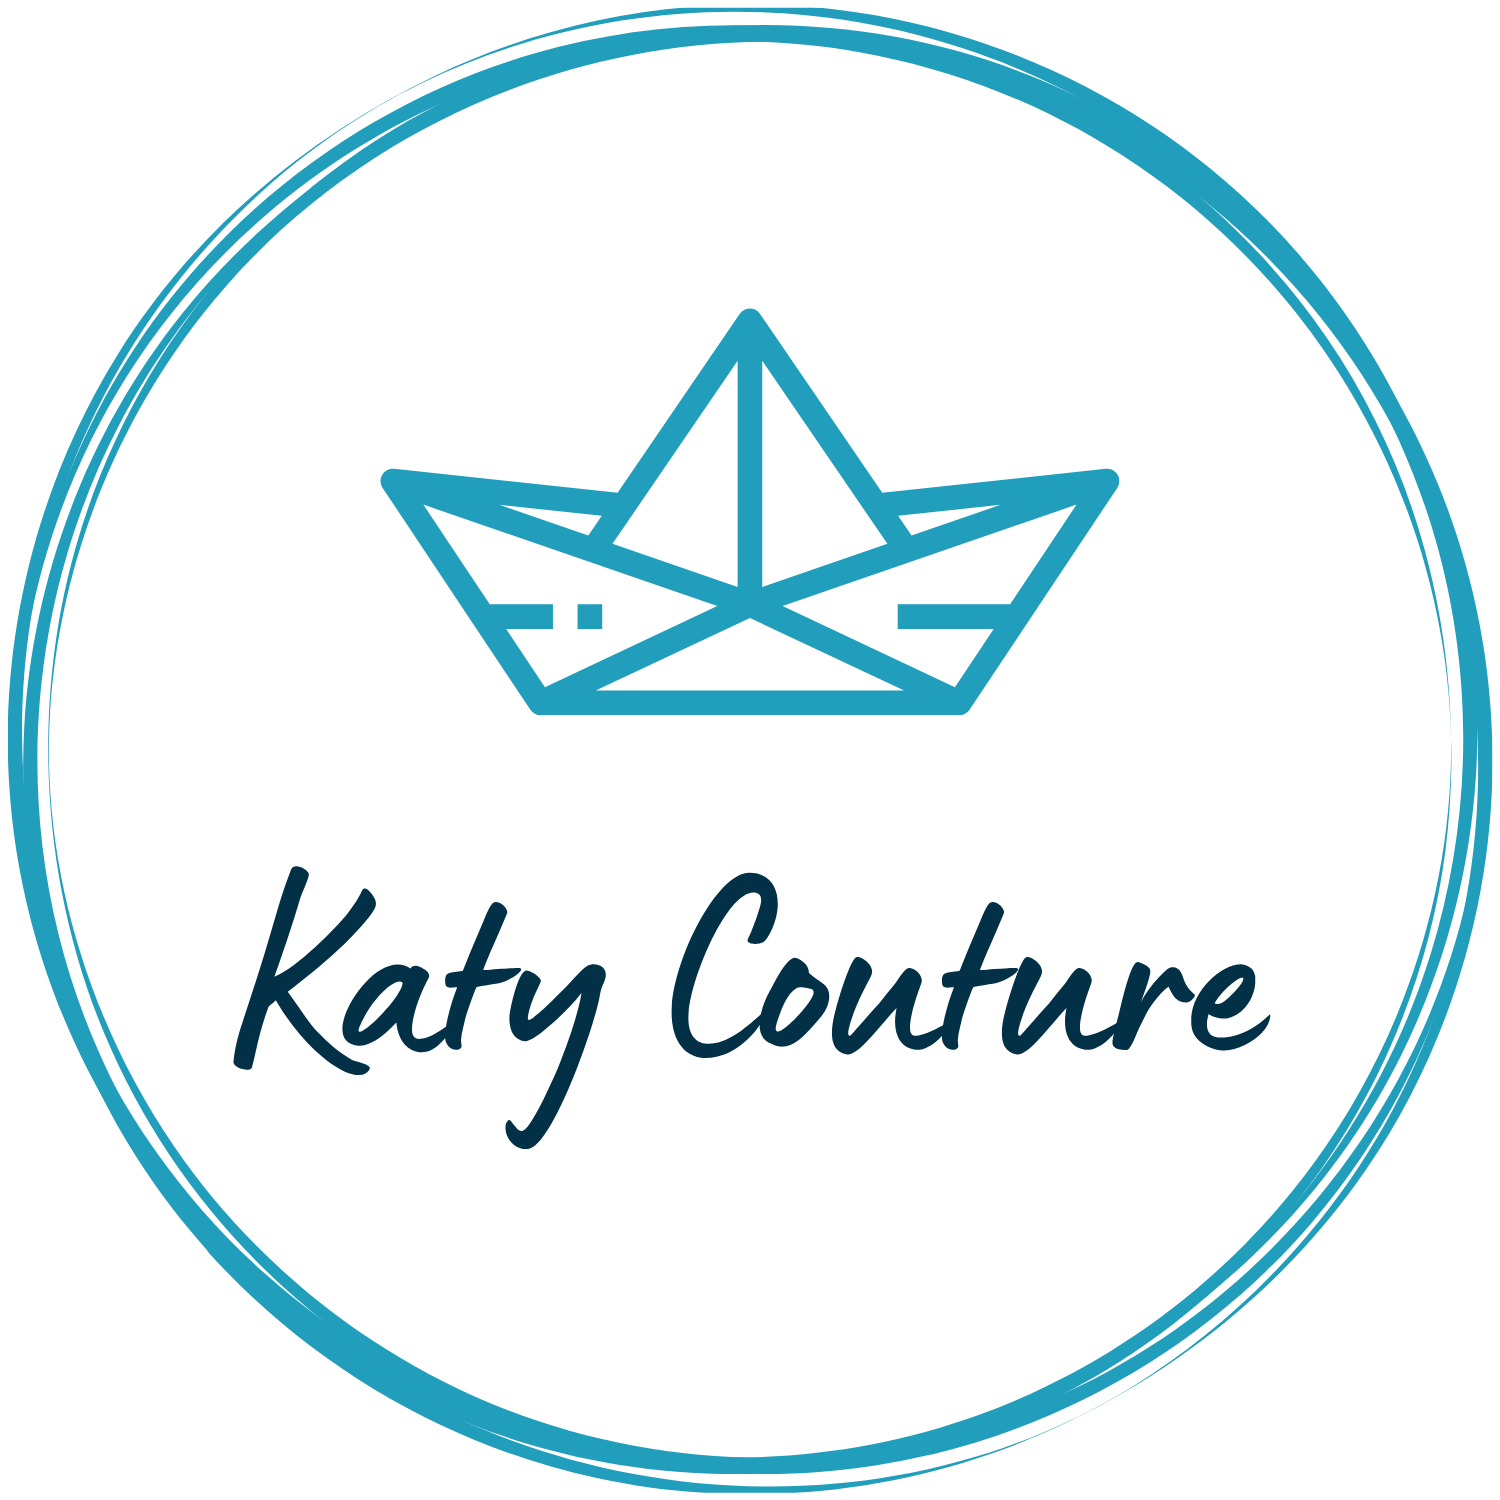 Katy Couture